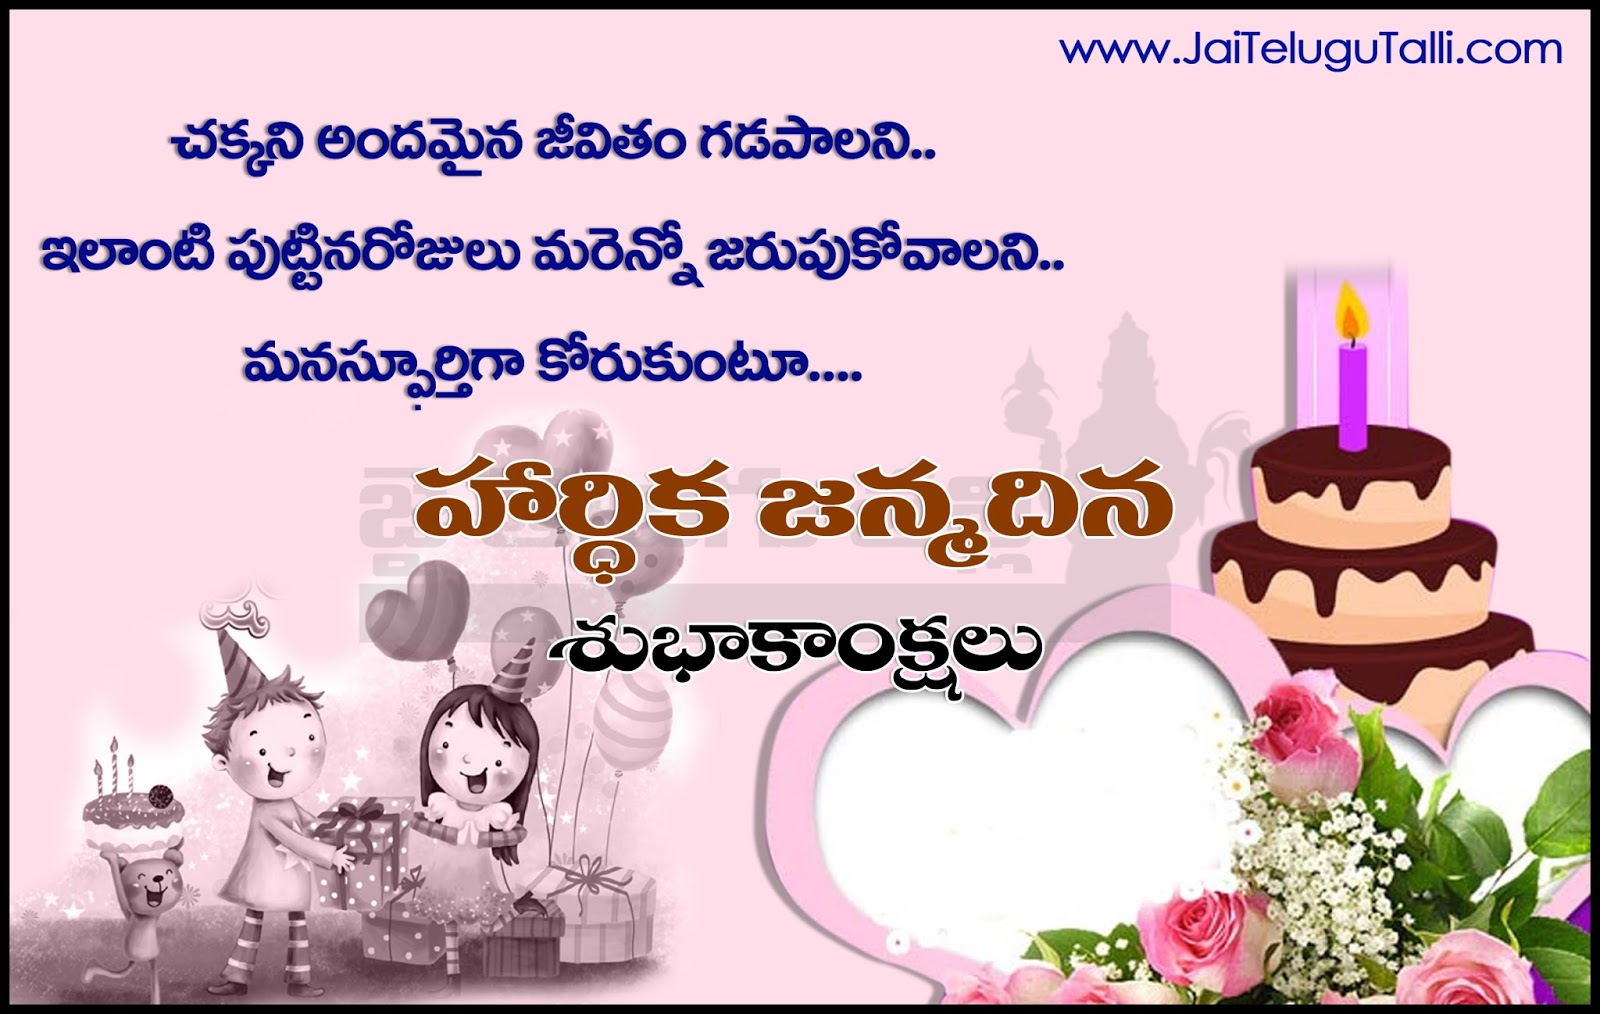 Happy birthday images with quotes in telugu labzada wallpaper beautiful sayings and quotations happy birthday quotes and images in m4hsunfo